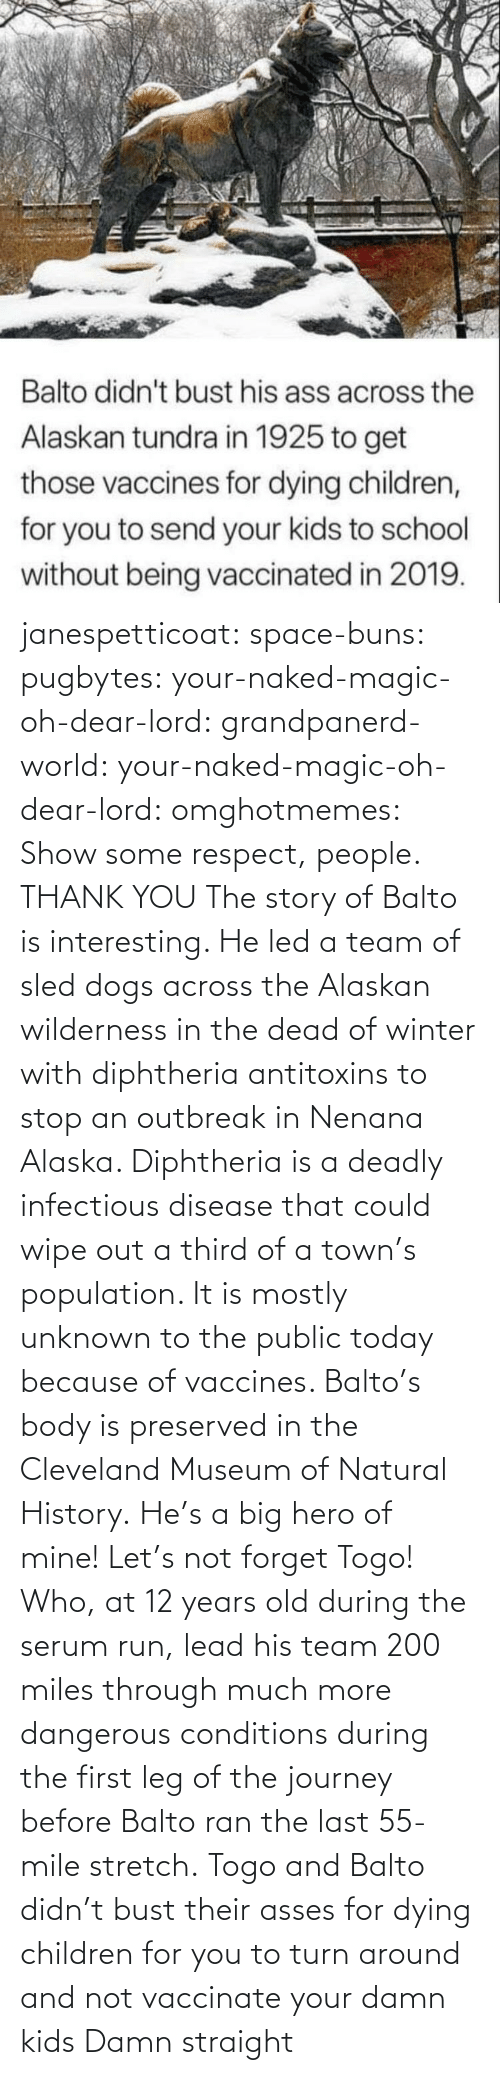 Miles: janespetticoat: space-buns:  pugbytes:   your-naked-magic-oh-dear-lord:  grandpanerd-world:   your-naked-magic-oh-dear-lord:  omghotmemes: Show some respect, people.  THANK YOU   The story of Balto is interesting. He led a team of sled dogs across the Alaskan wilderness in the dead of winter with diphtheria antitoxins to stop an outbreak in Nenana Alaska. Diphtheria is a deadly infectious disease that could wipe out a third of a town's population. It is mostly unknown to the public today because of vaccines. Balto's body is preserved in the Cleveland Museum of Natural History.   He's a big hero of mine!   Let's not forget Togo! Who, at 12 years old during the serum run, lead his team 200 miles through much more dangerous conditions during the first leg of the journey before Balto ran the last 55-mile stretch.   Togo and Balto didn't bust their asses for dying children for you to turn around and not vaccinate your damn kids    Damn straight